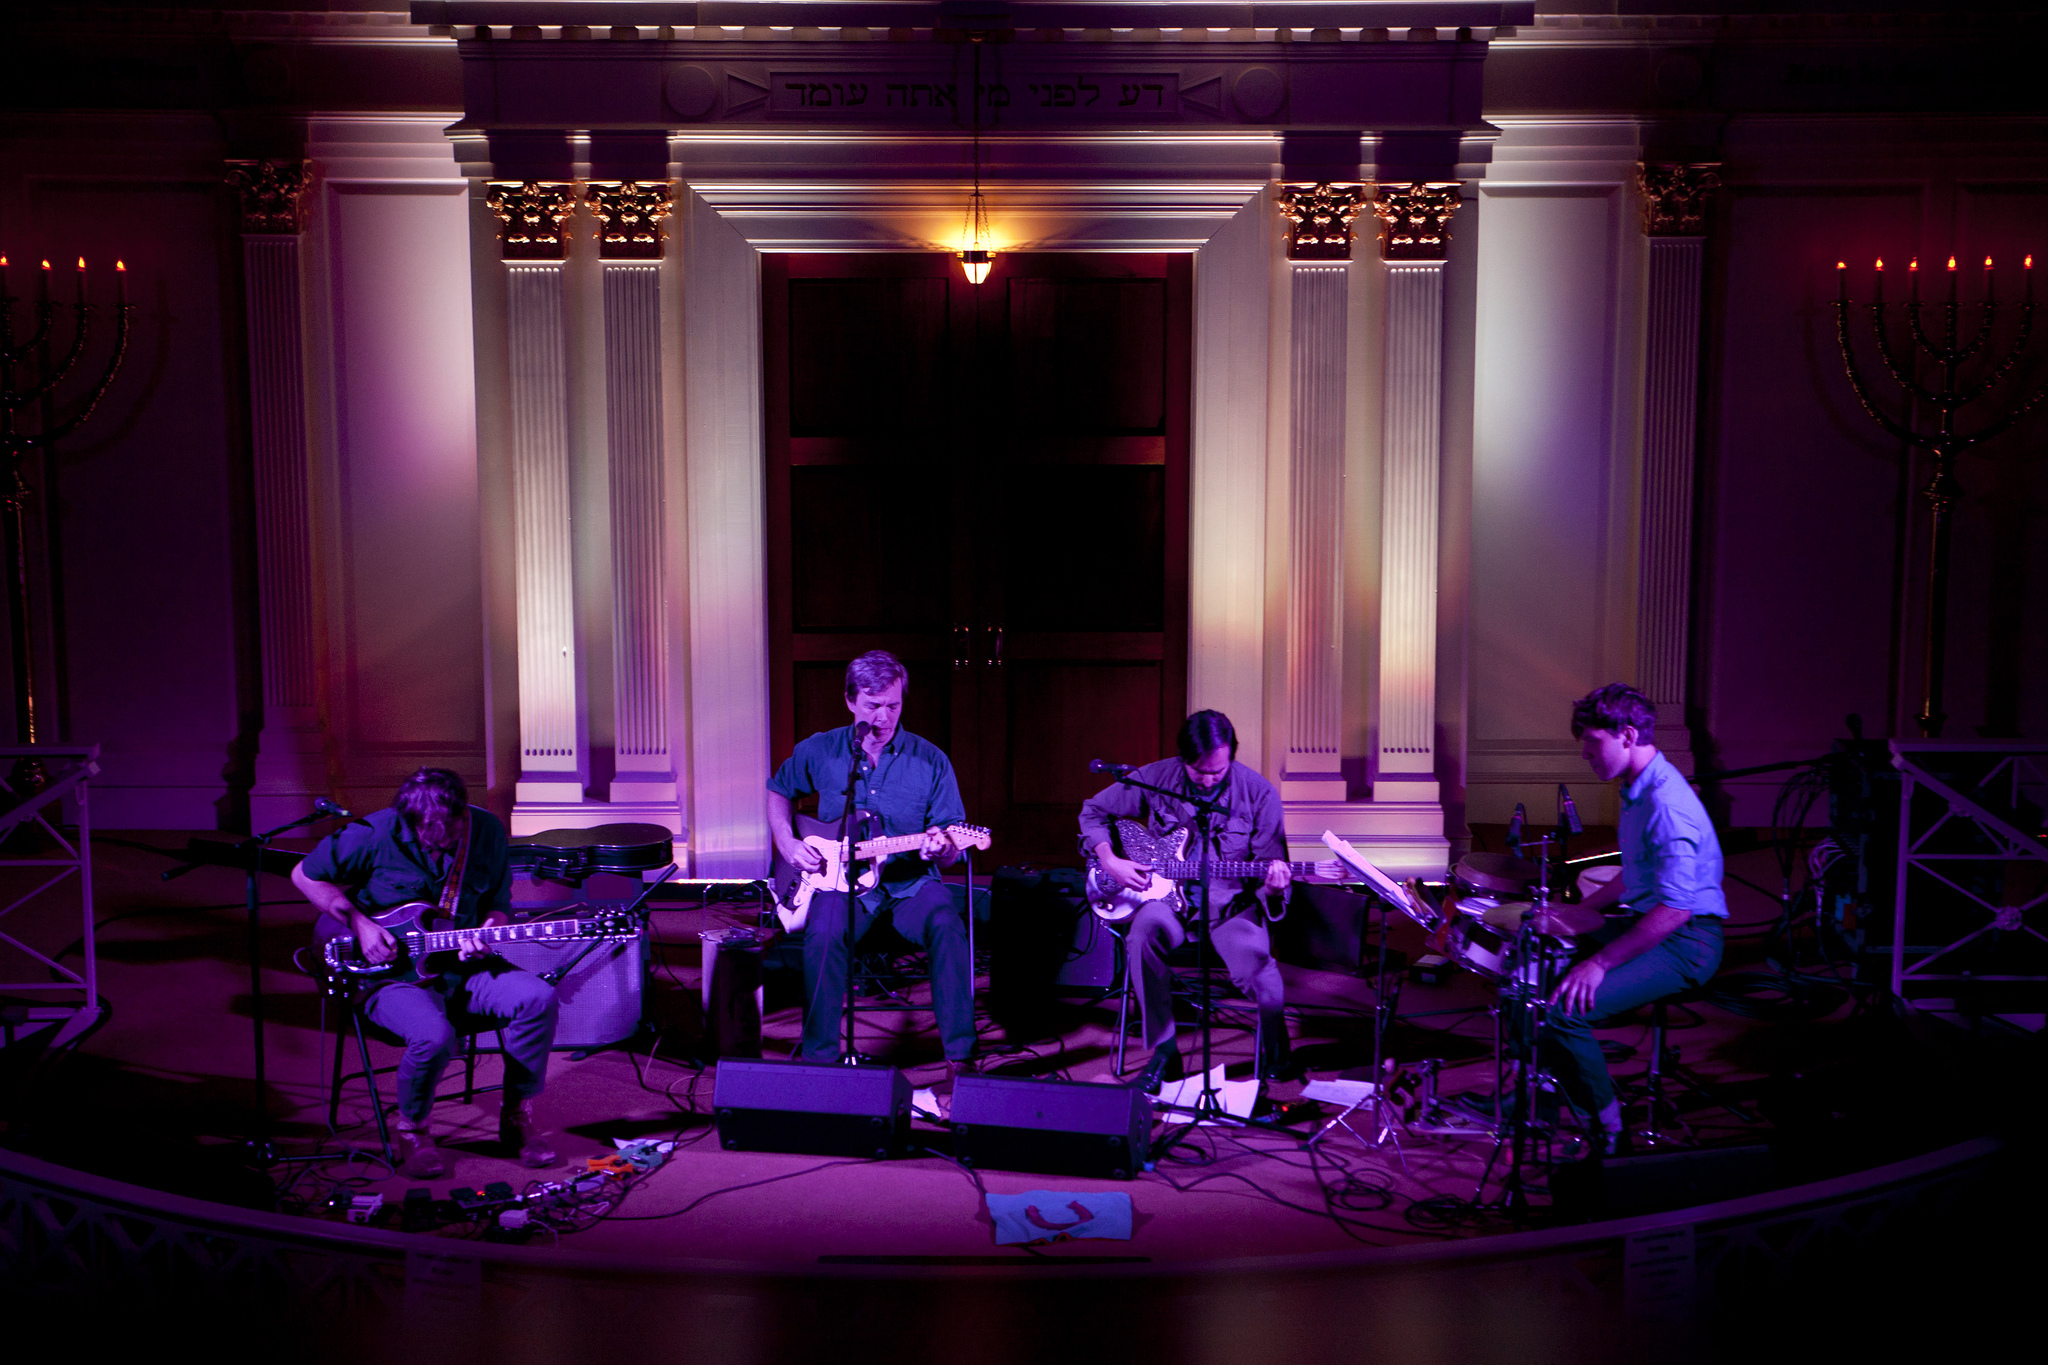 Bill Callahan and his band performed at the historic Sixth And I Synagogue in Washington, D.C. on Oct. 2, 2013.